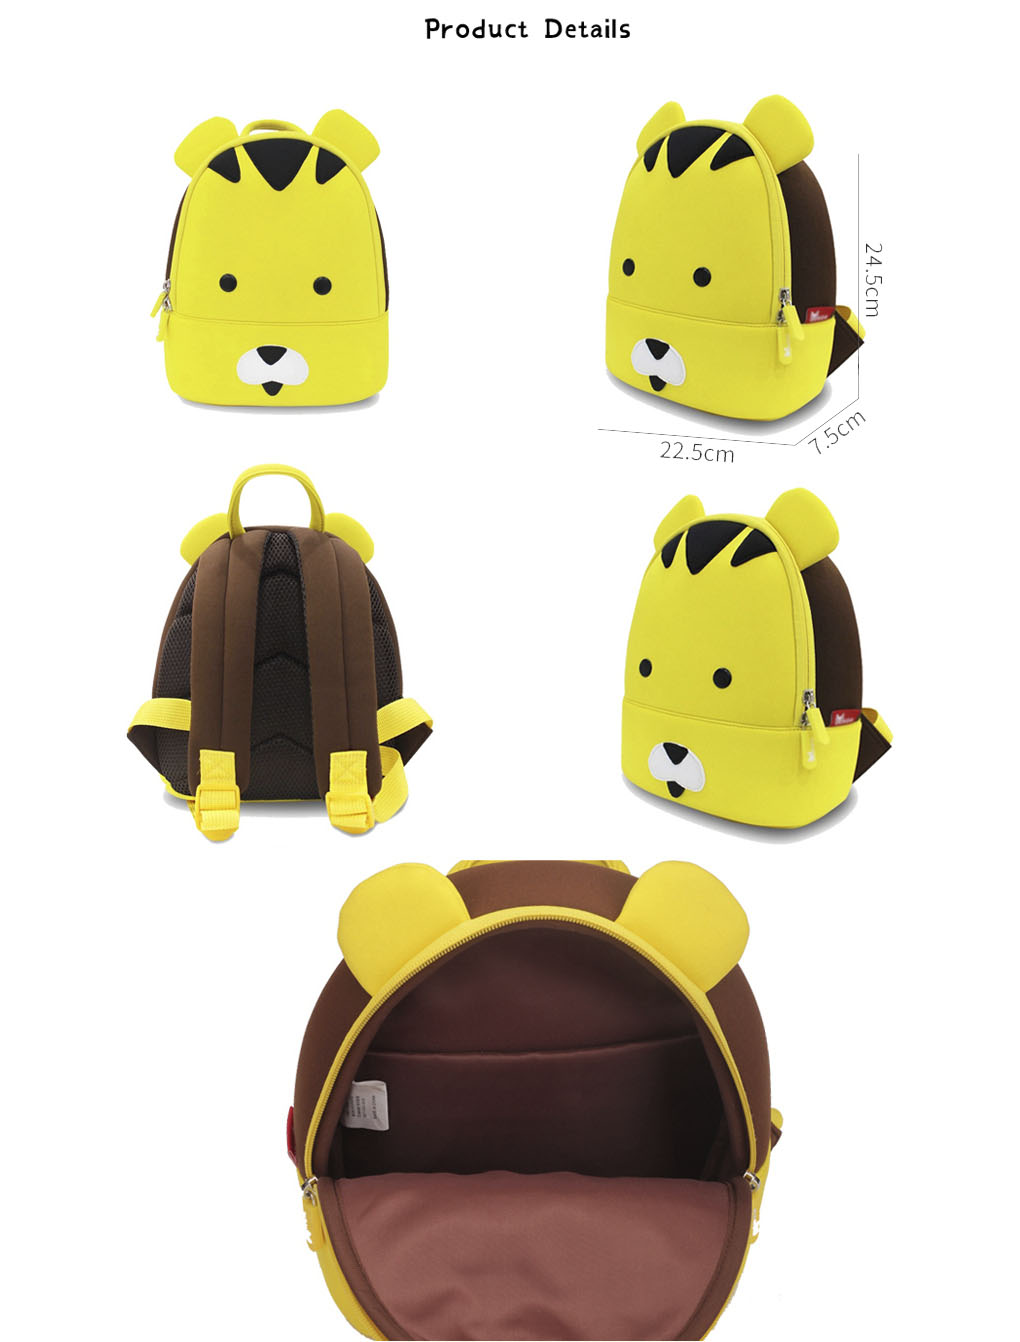 Nohoo Children Products-Professional Tiger Neoprene Kids Backpack Animal Cute Toddler Rucksack